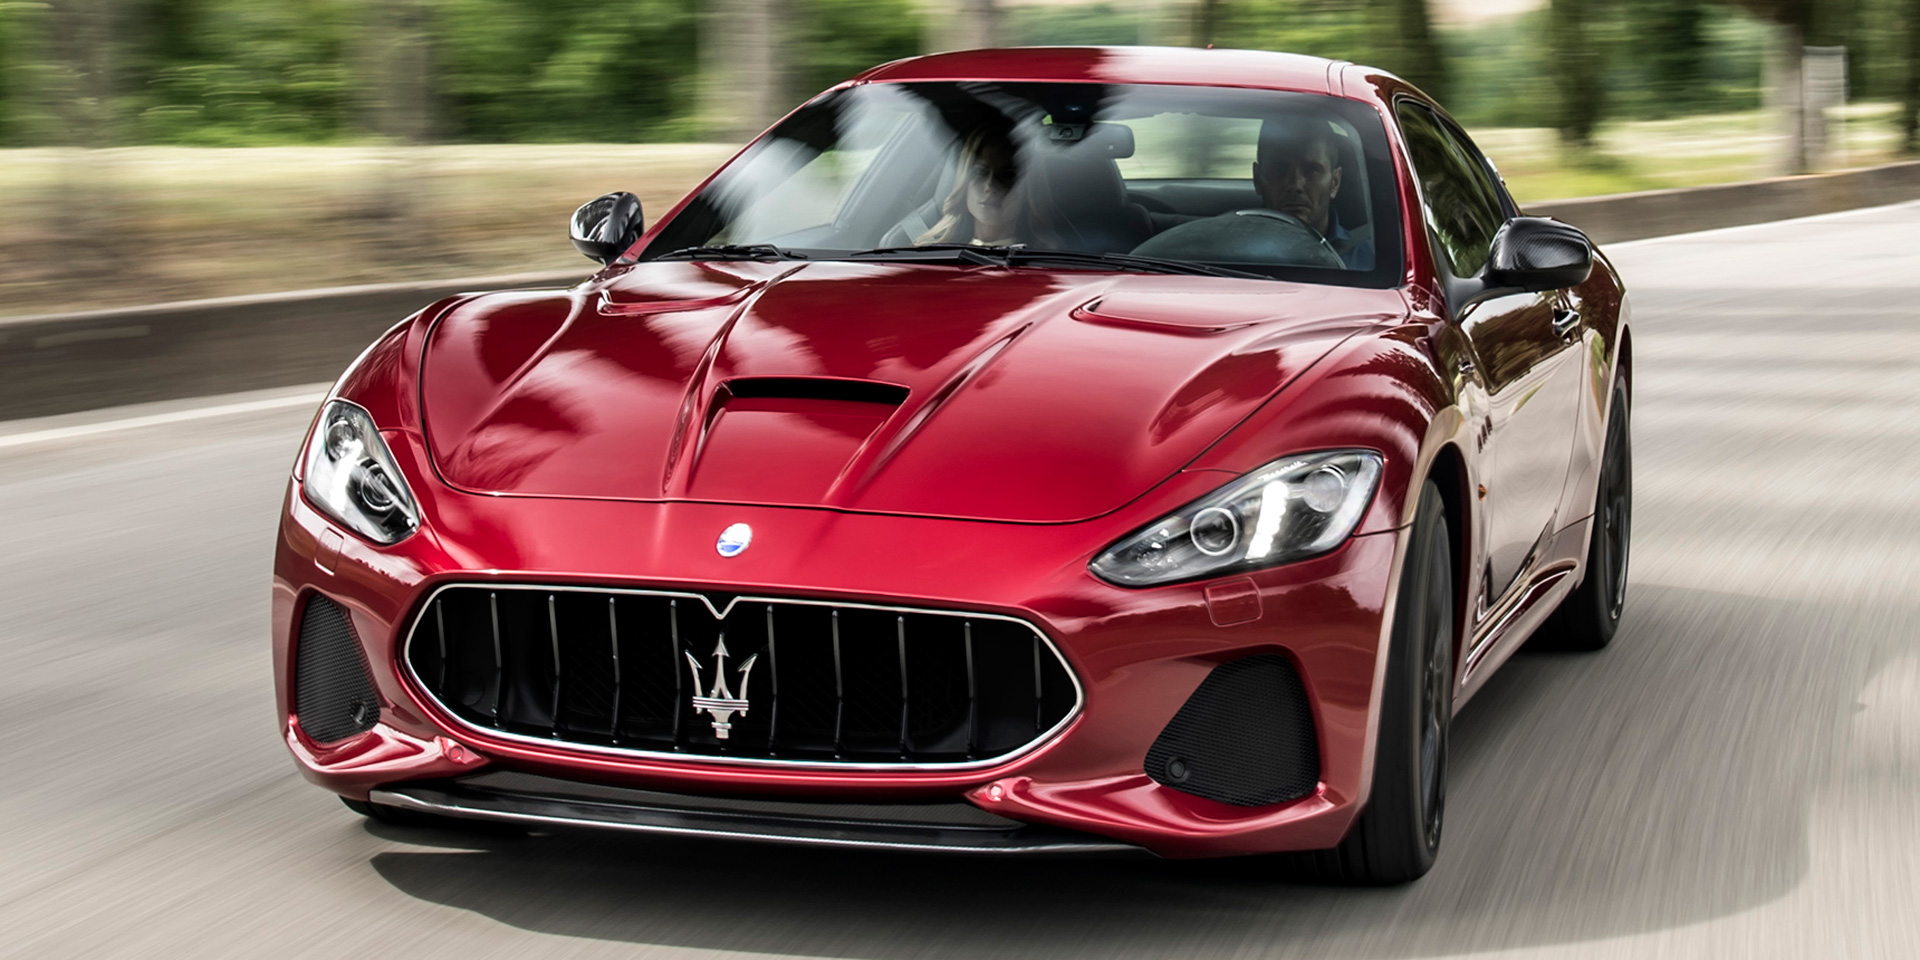 2019 Maserati Granturismo Vehicles On Display Chicago Auto Show